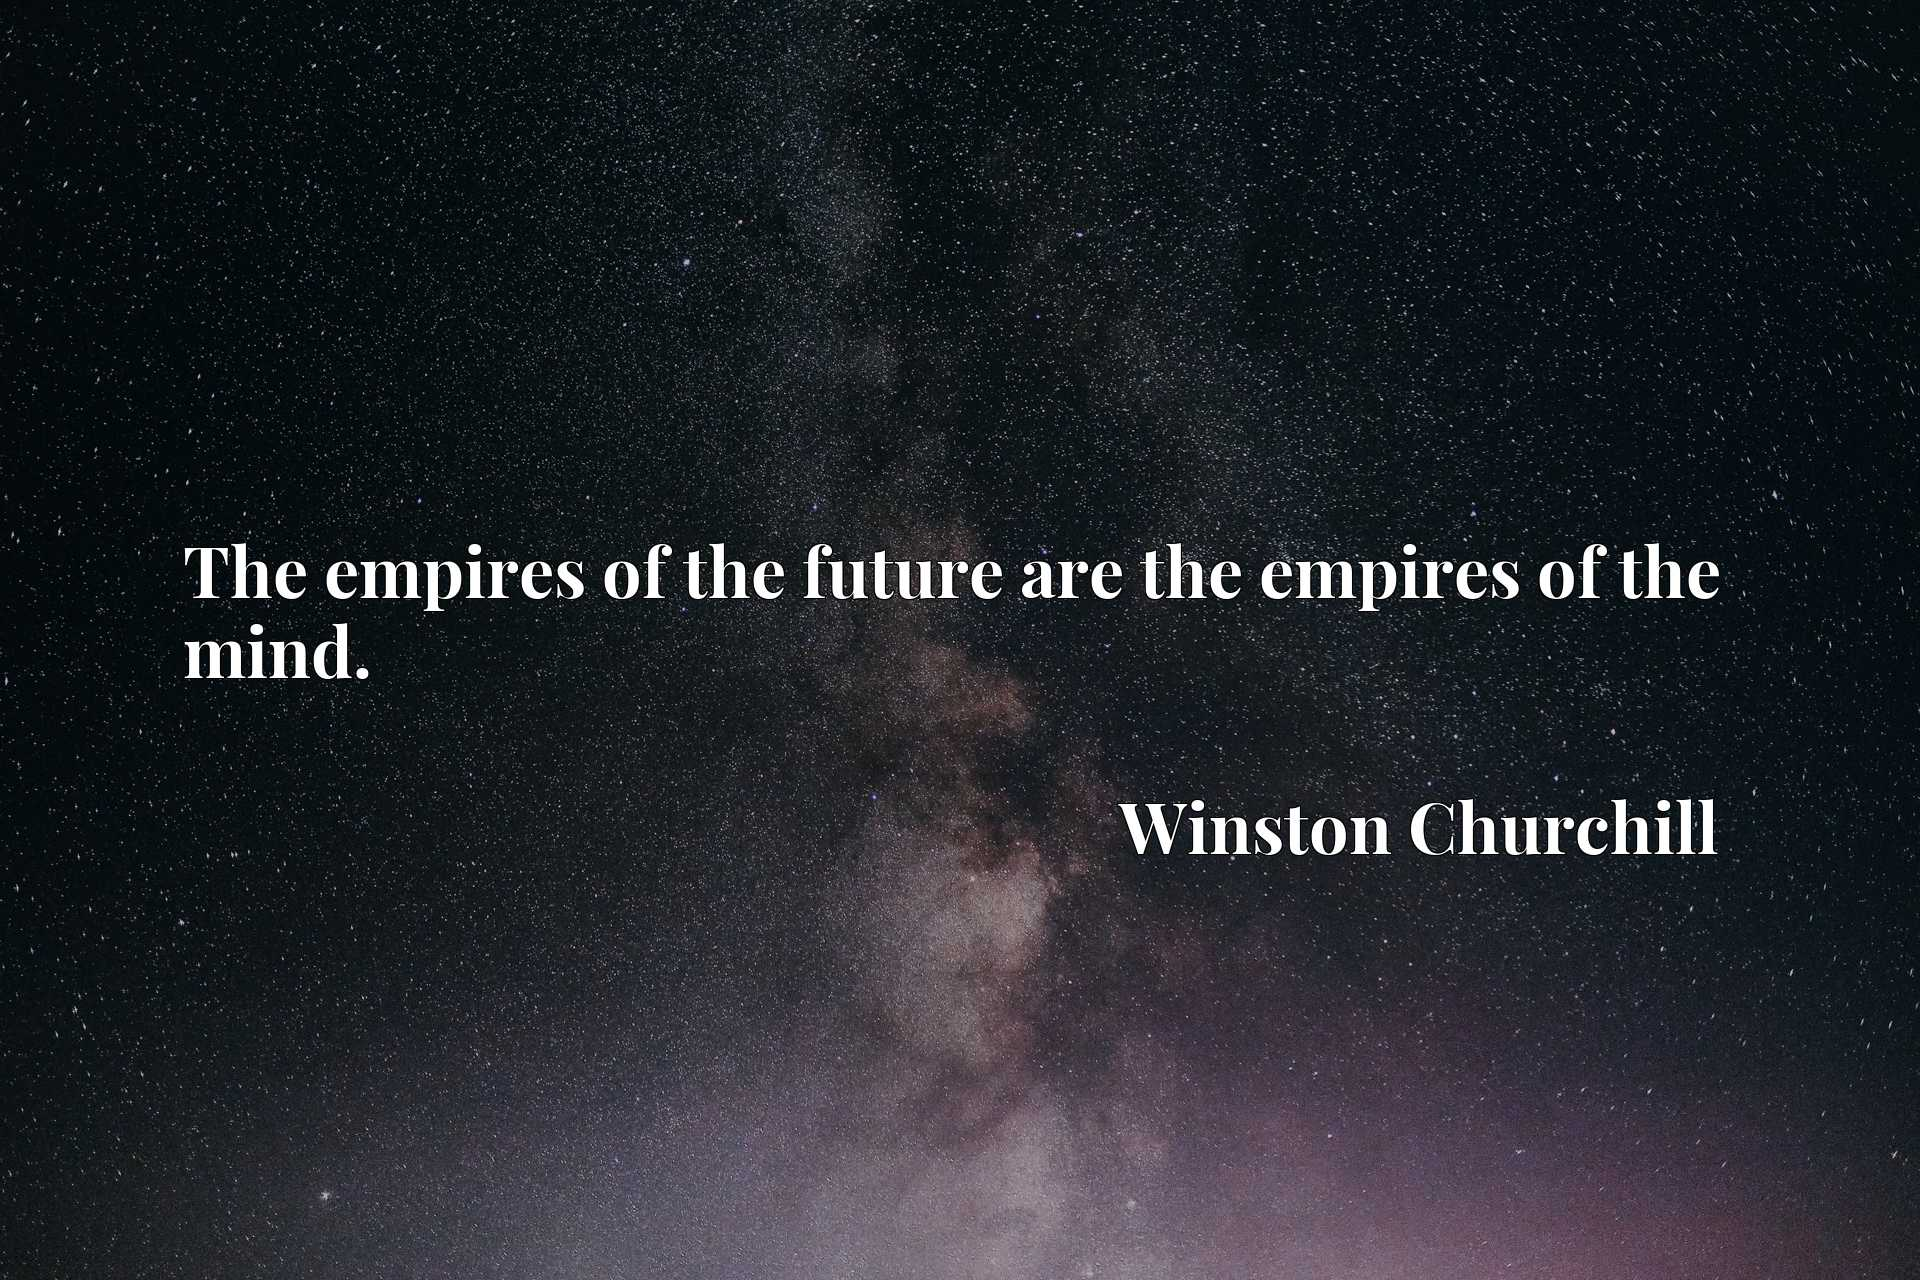 The empires of the future are the empires of the mind.